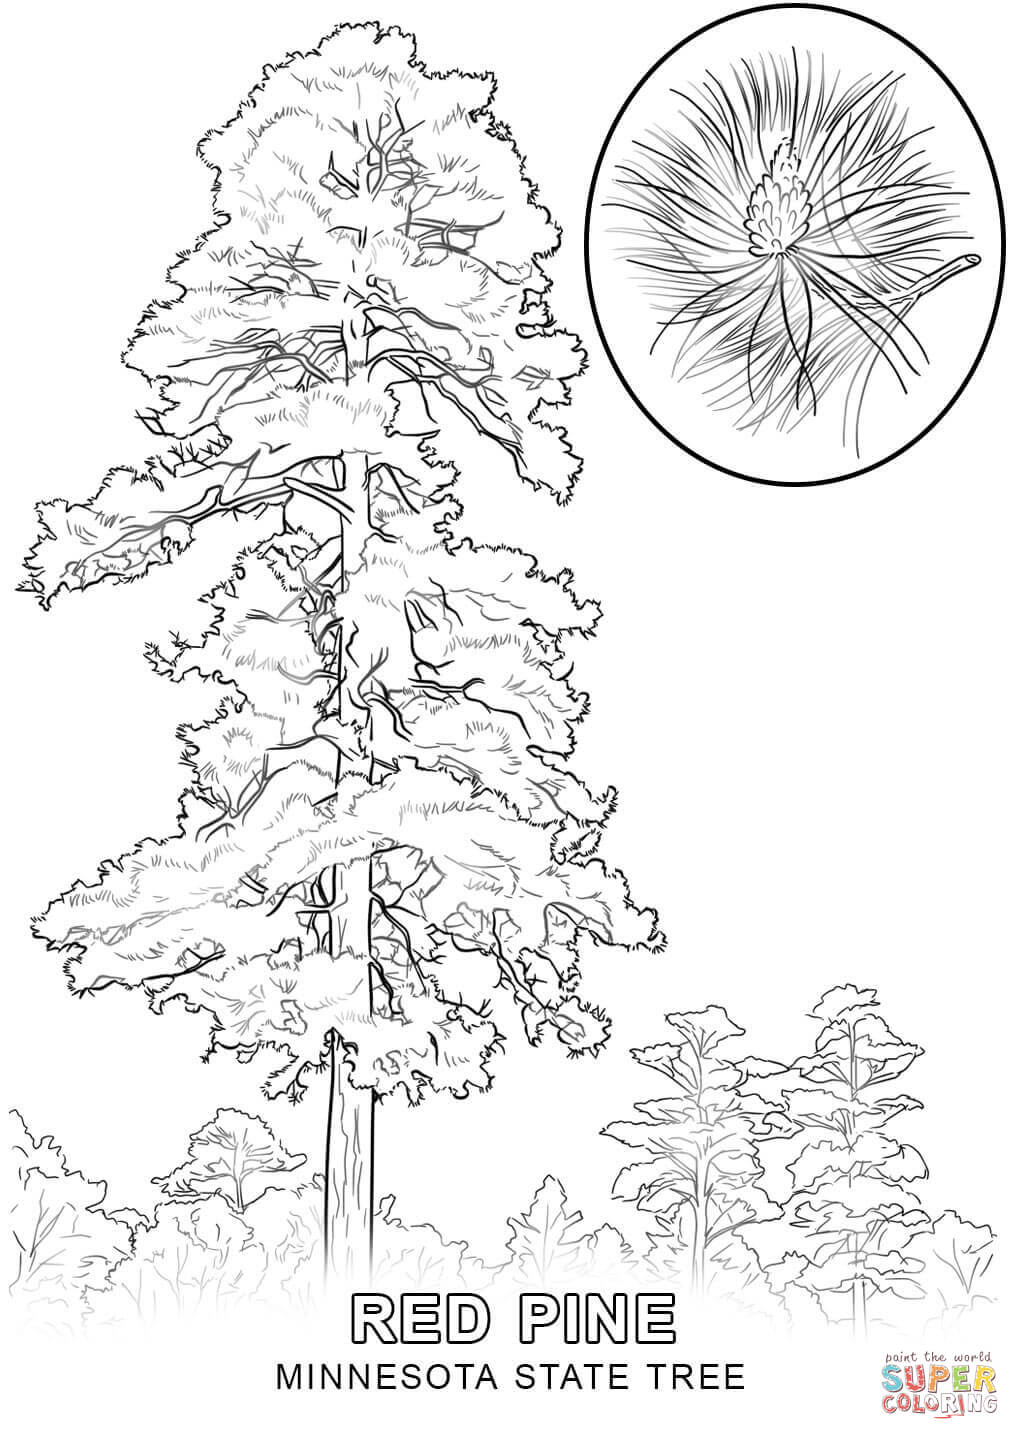 Louisiana State Tree Coloring Page - Coloring Home